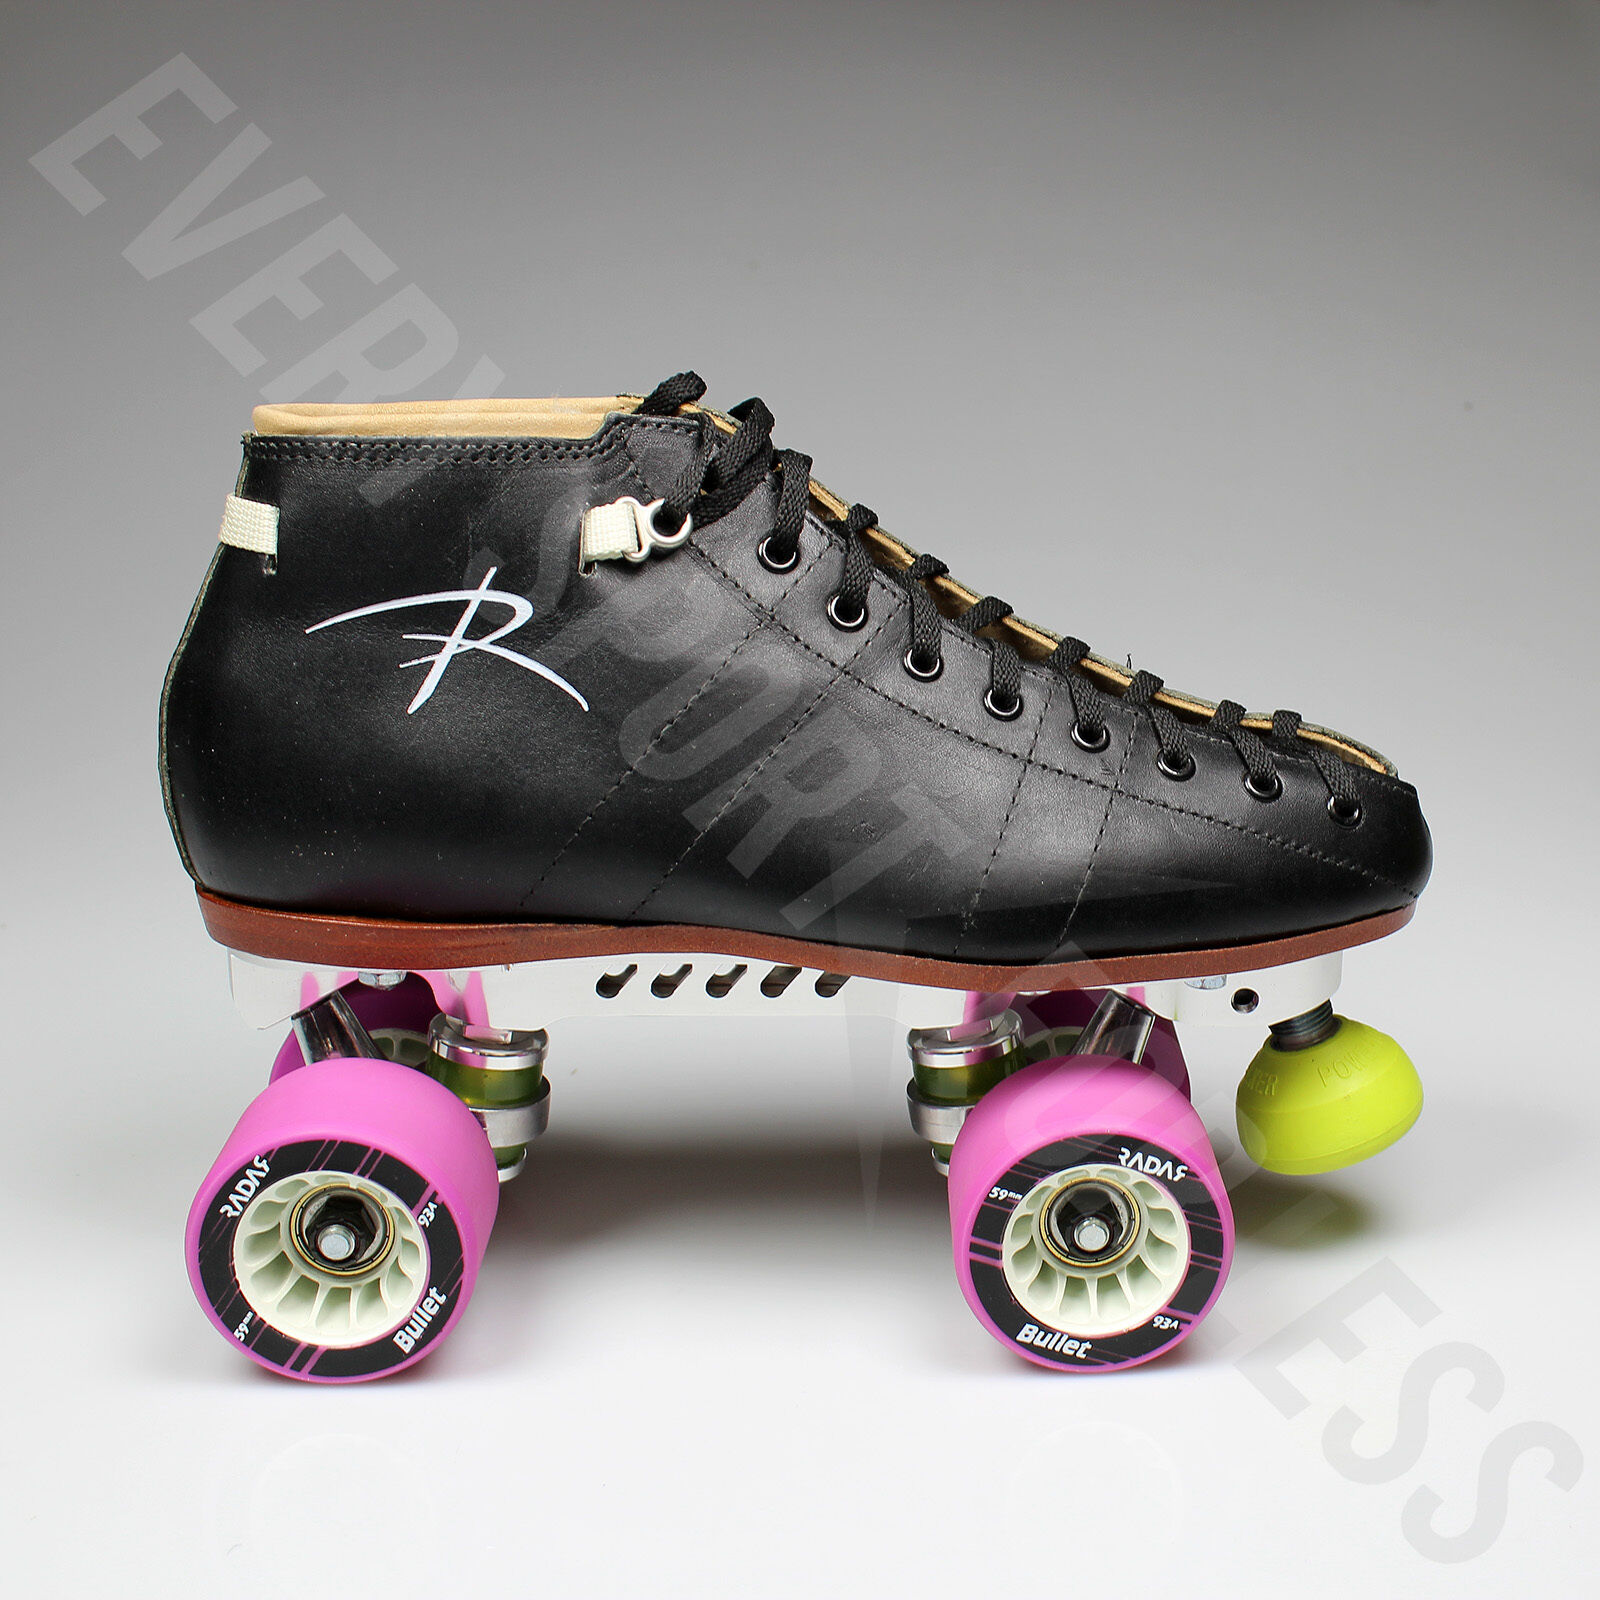 Riedell Torch 495 (New) Roller Derby Skates (New) 495 2a66ee